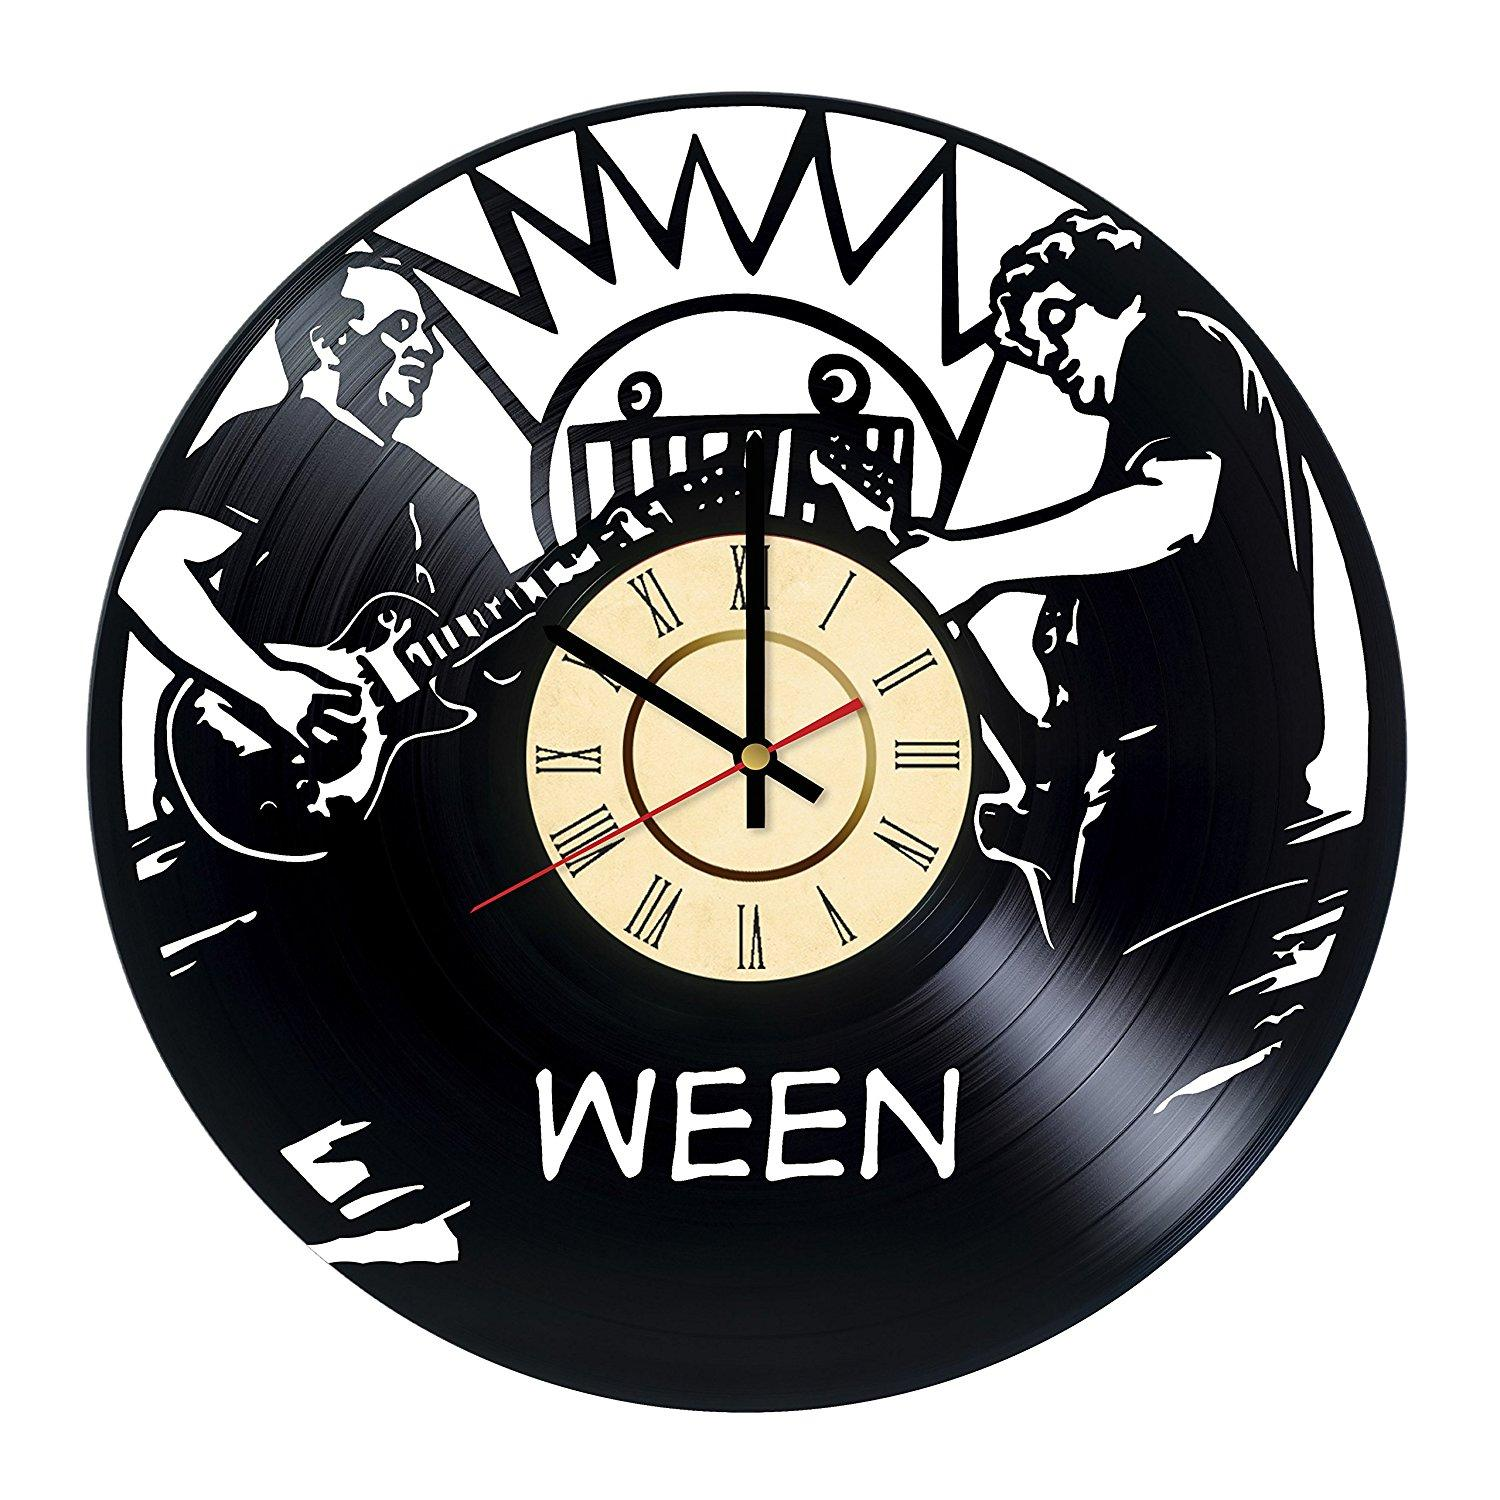 Ween rock band vinyl record wall clock get unique bedroom or home see larger image amipublicfo Gallery